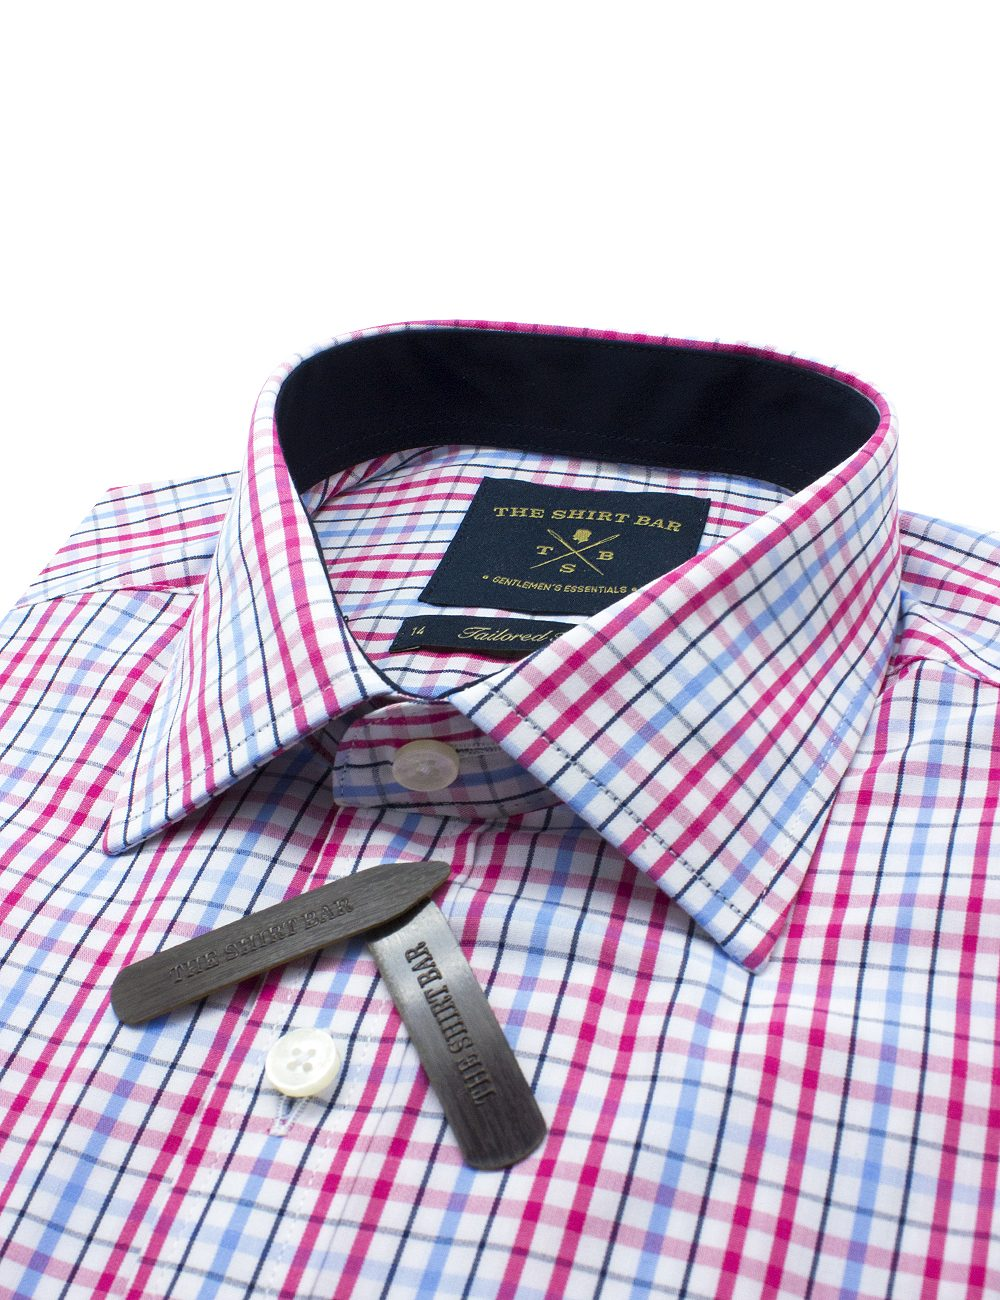 Pink Checks Eco-ol Bamboo Slim / Tailored Fit Long Sleeve Shirt - TF2A7.7